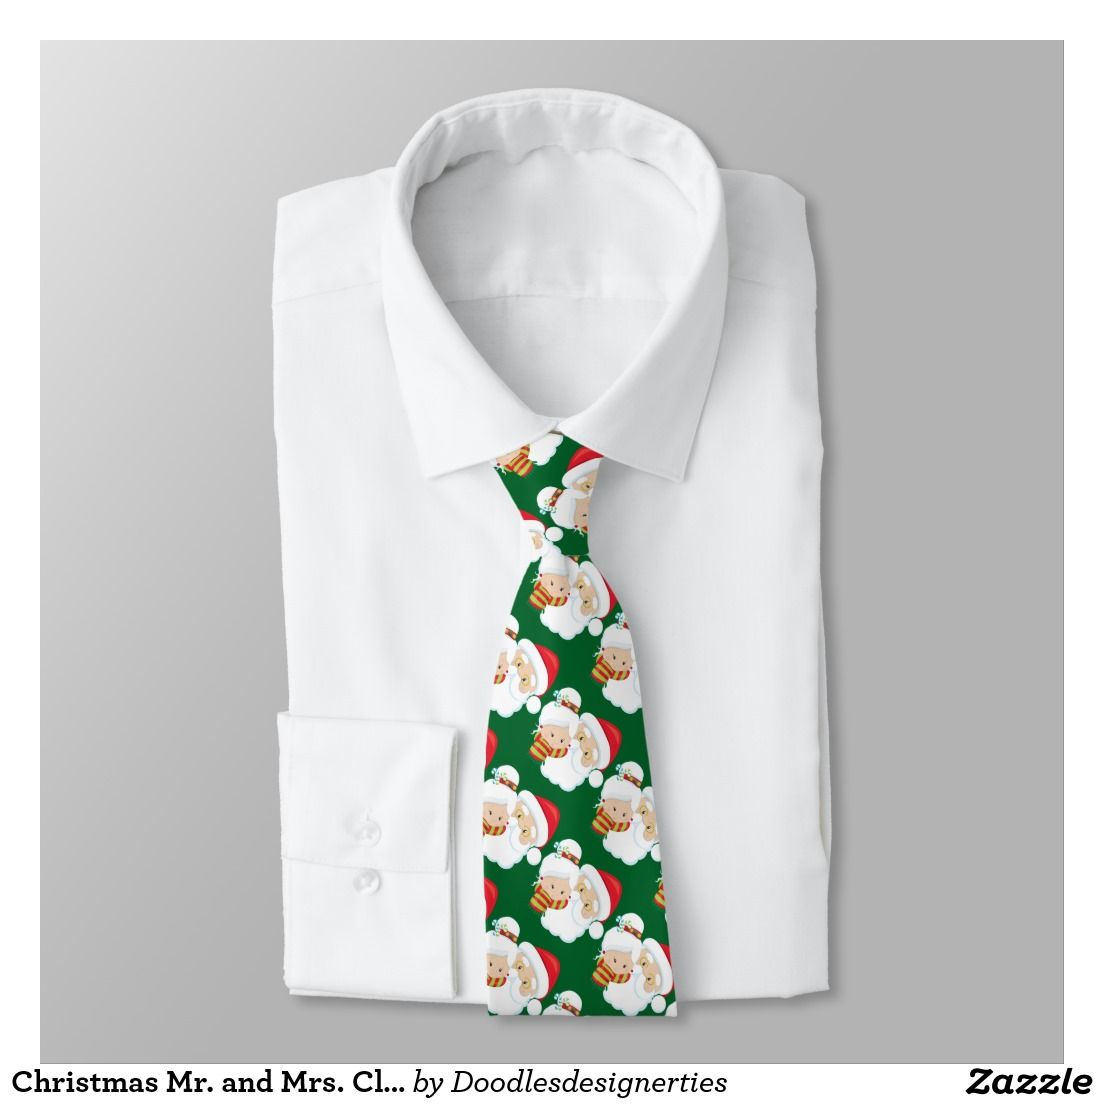 Christmas Mr. and Mrs. Claus tiled tie